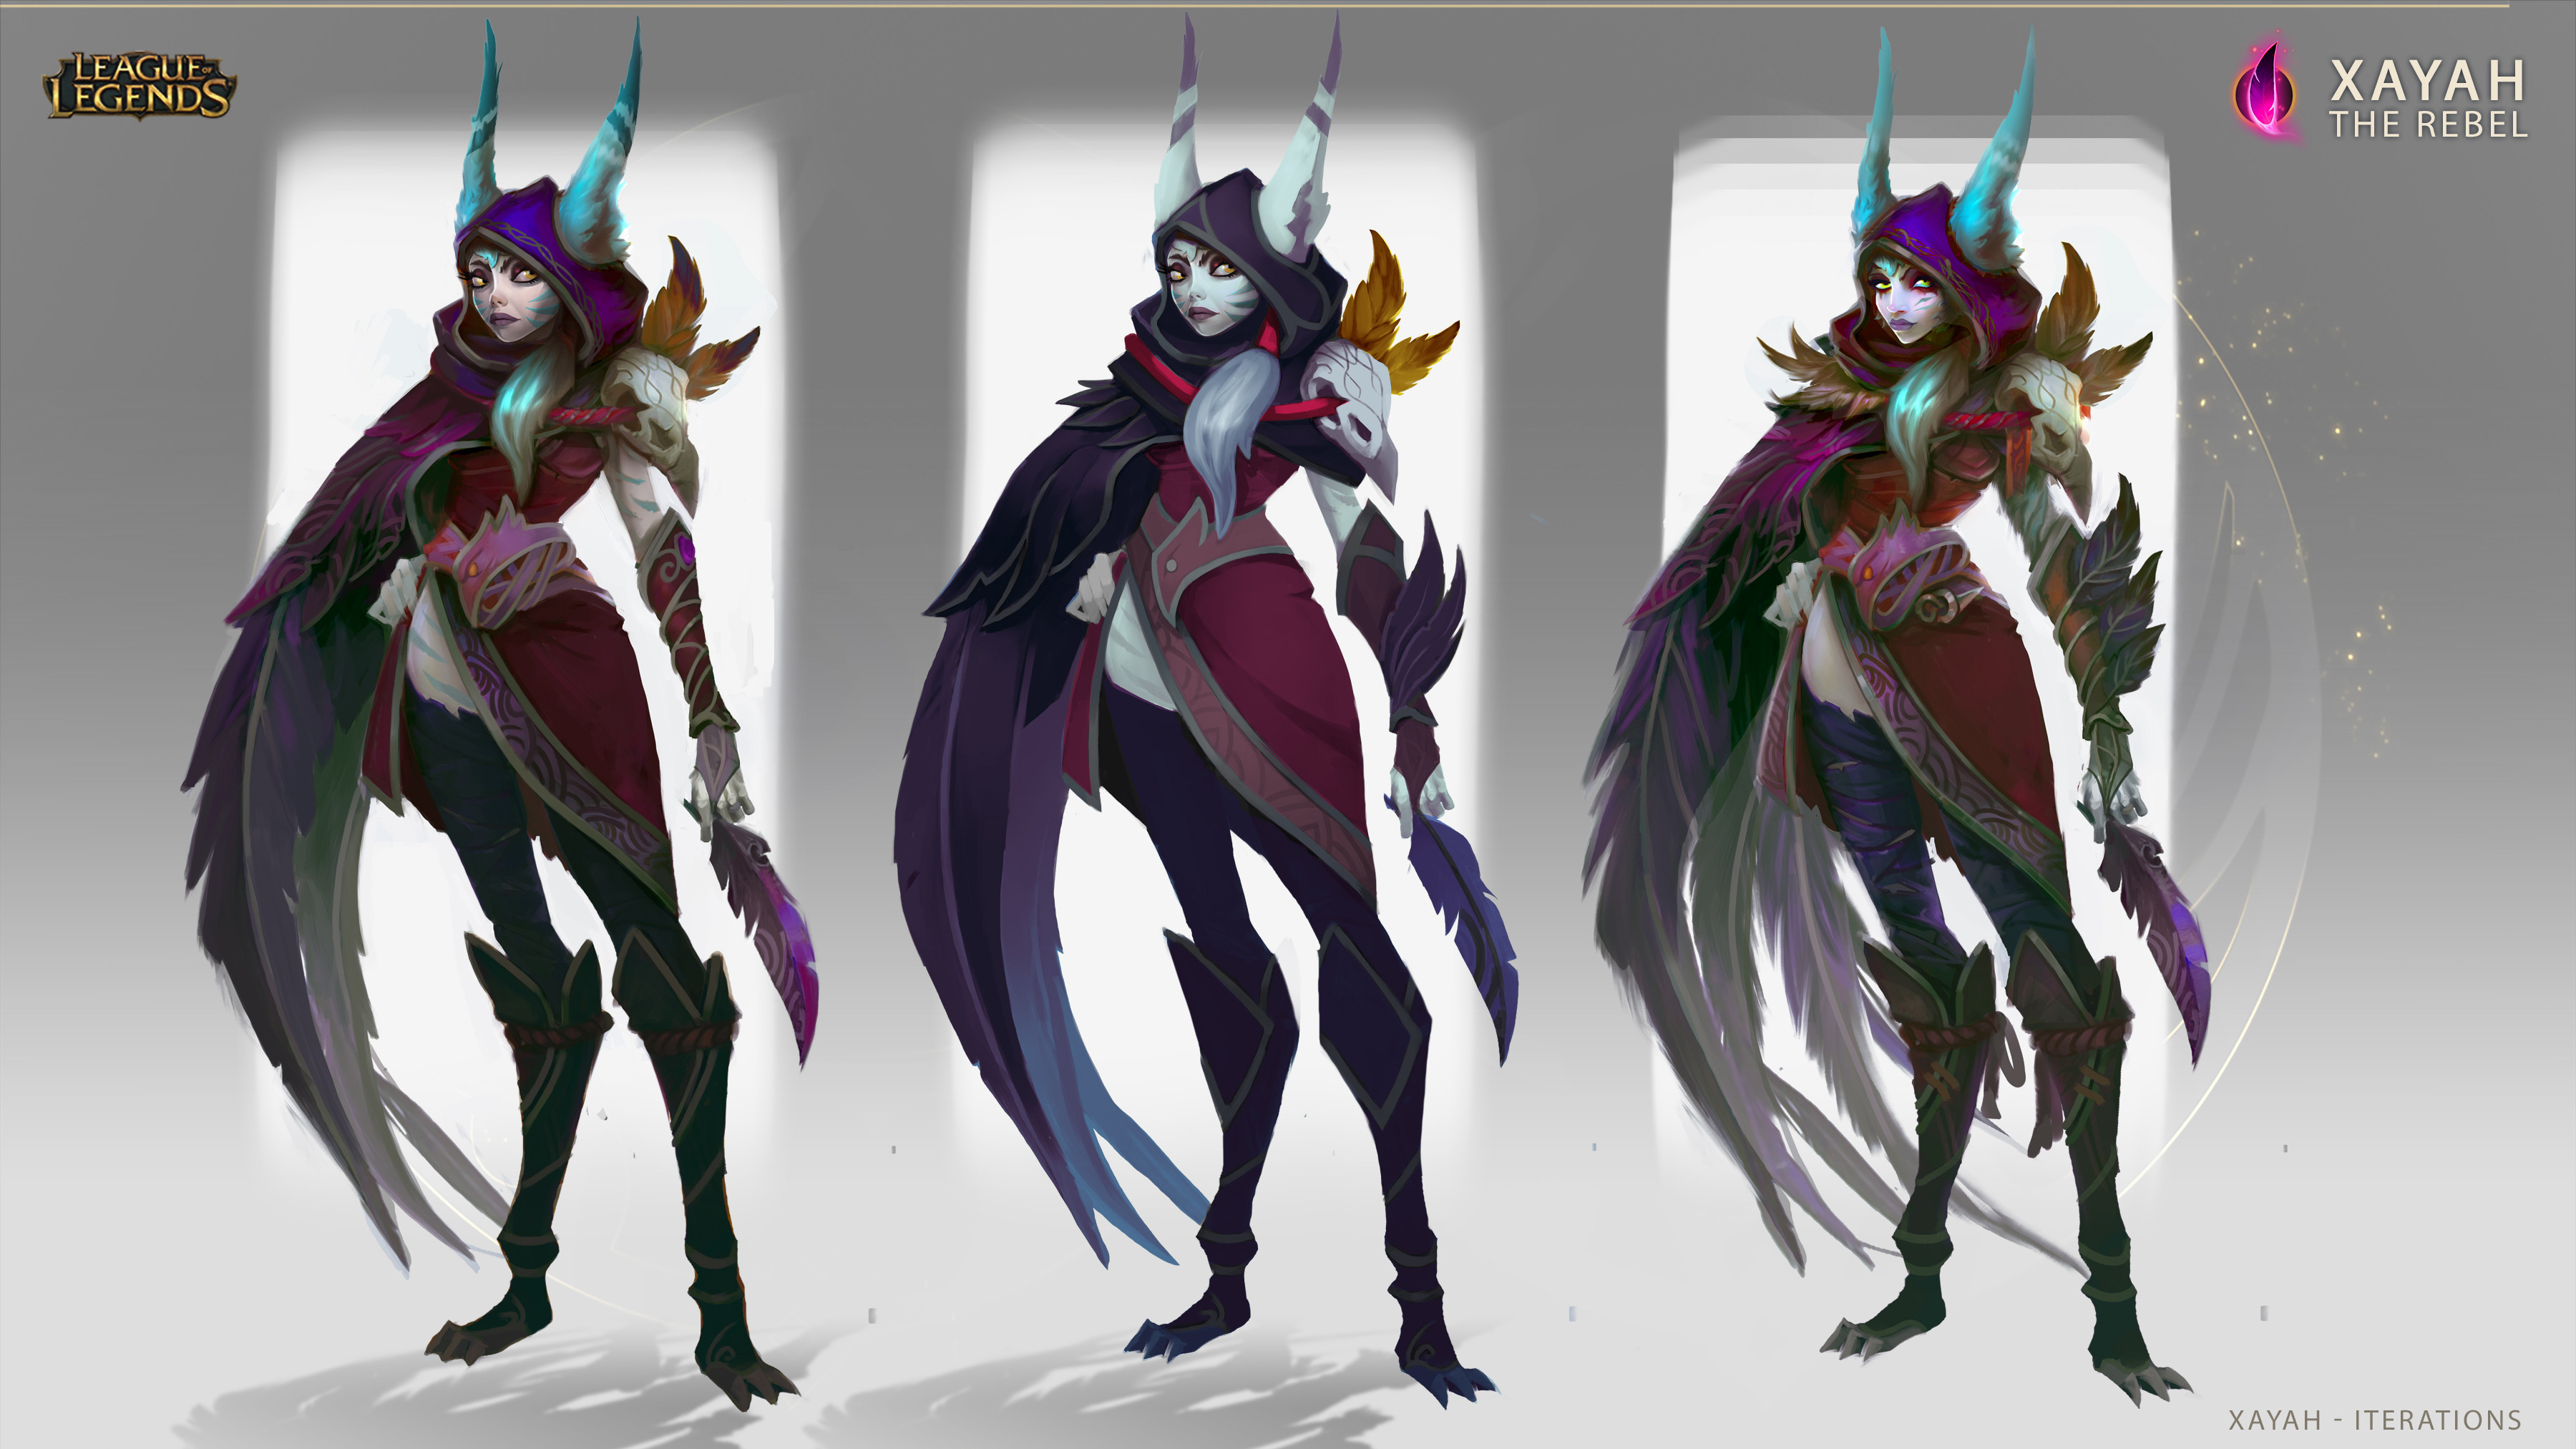 Different iterations I did for Xayah before the final one.